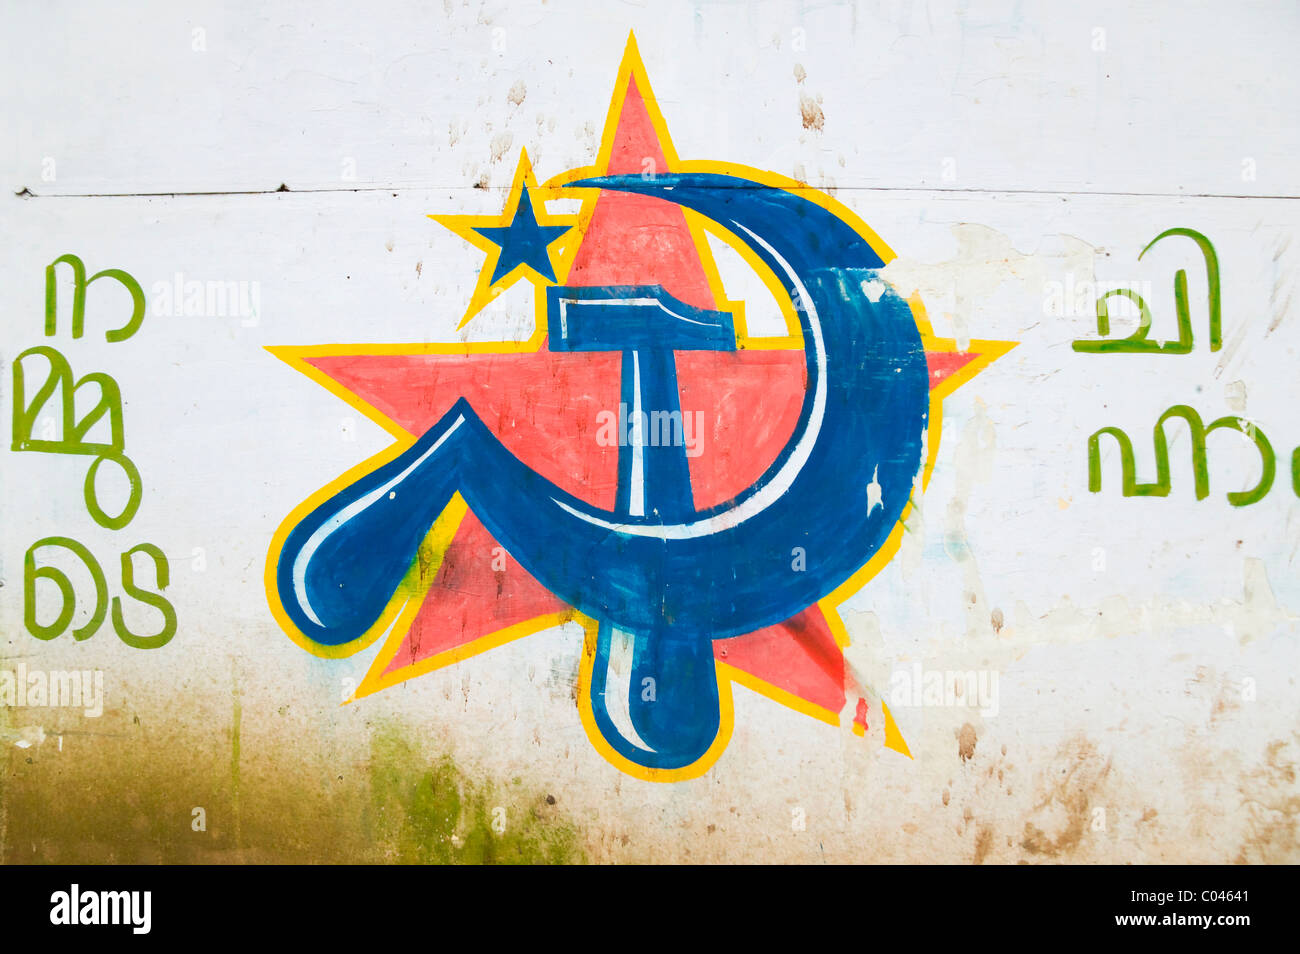 Kerala communist party stock photos kerala communist party stock symbol of communist party kochi kerala india stock image buycottarizona